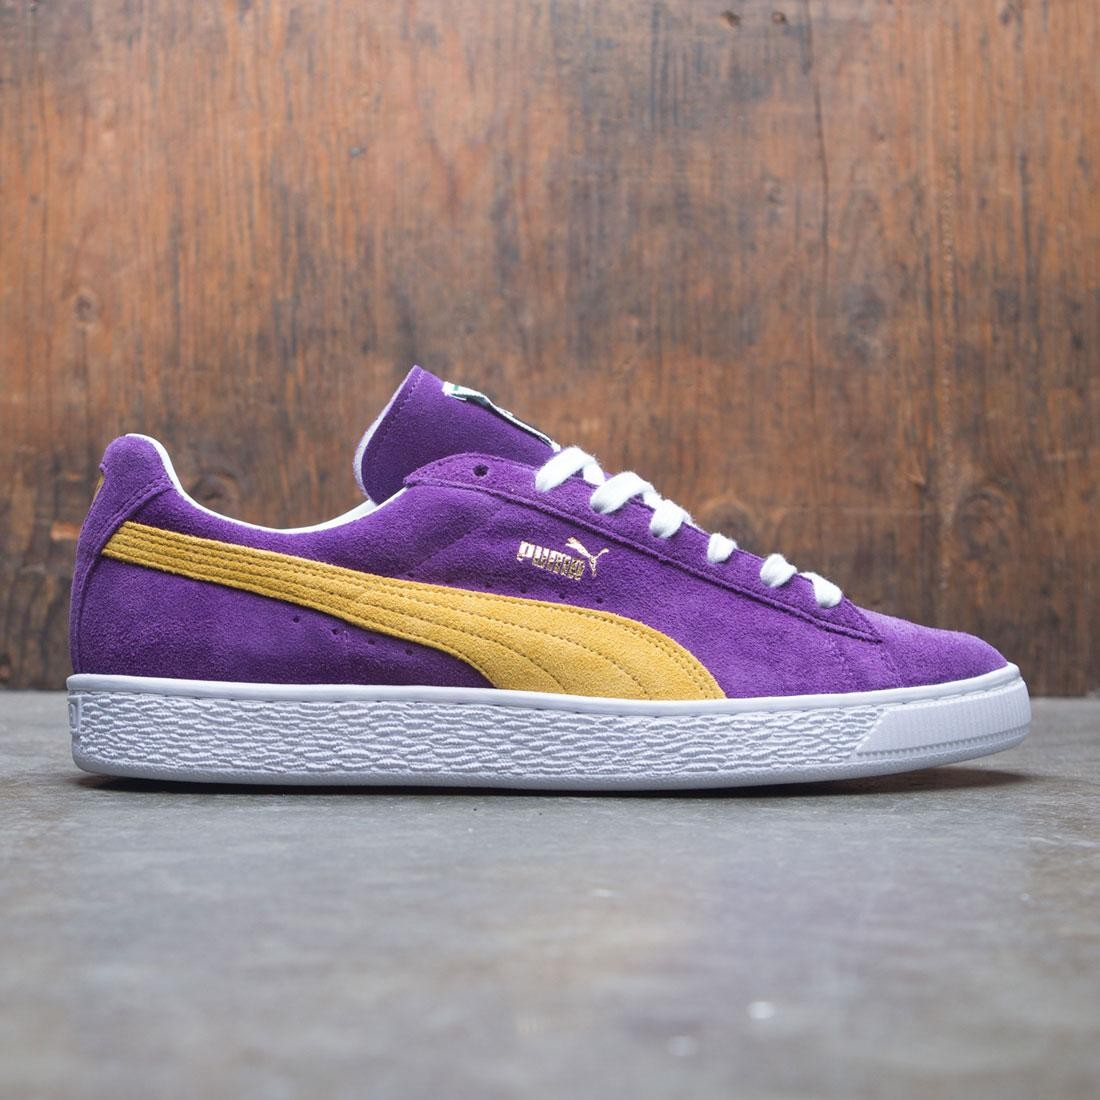 41843973c144 Puma Men Suede Classic - Made In Japan Collectors purple yellow